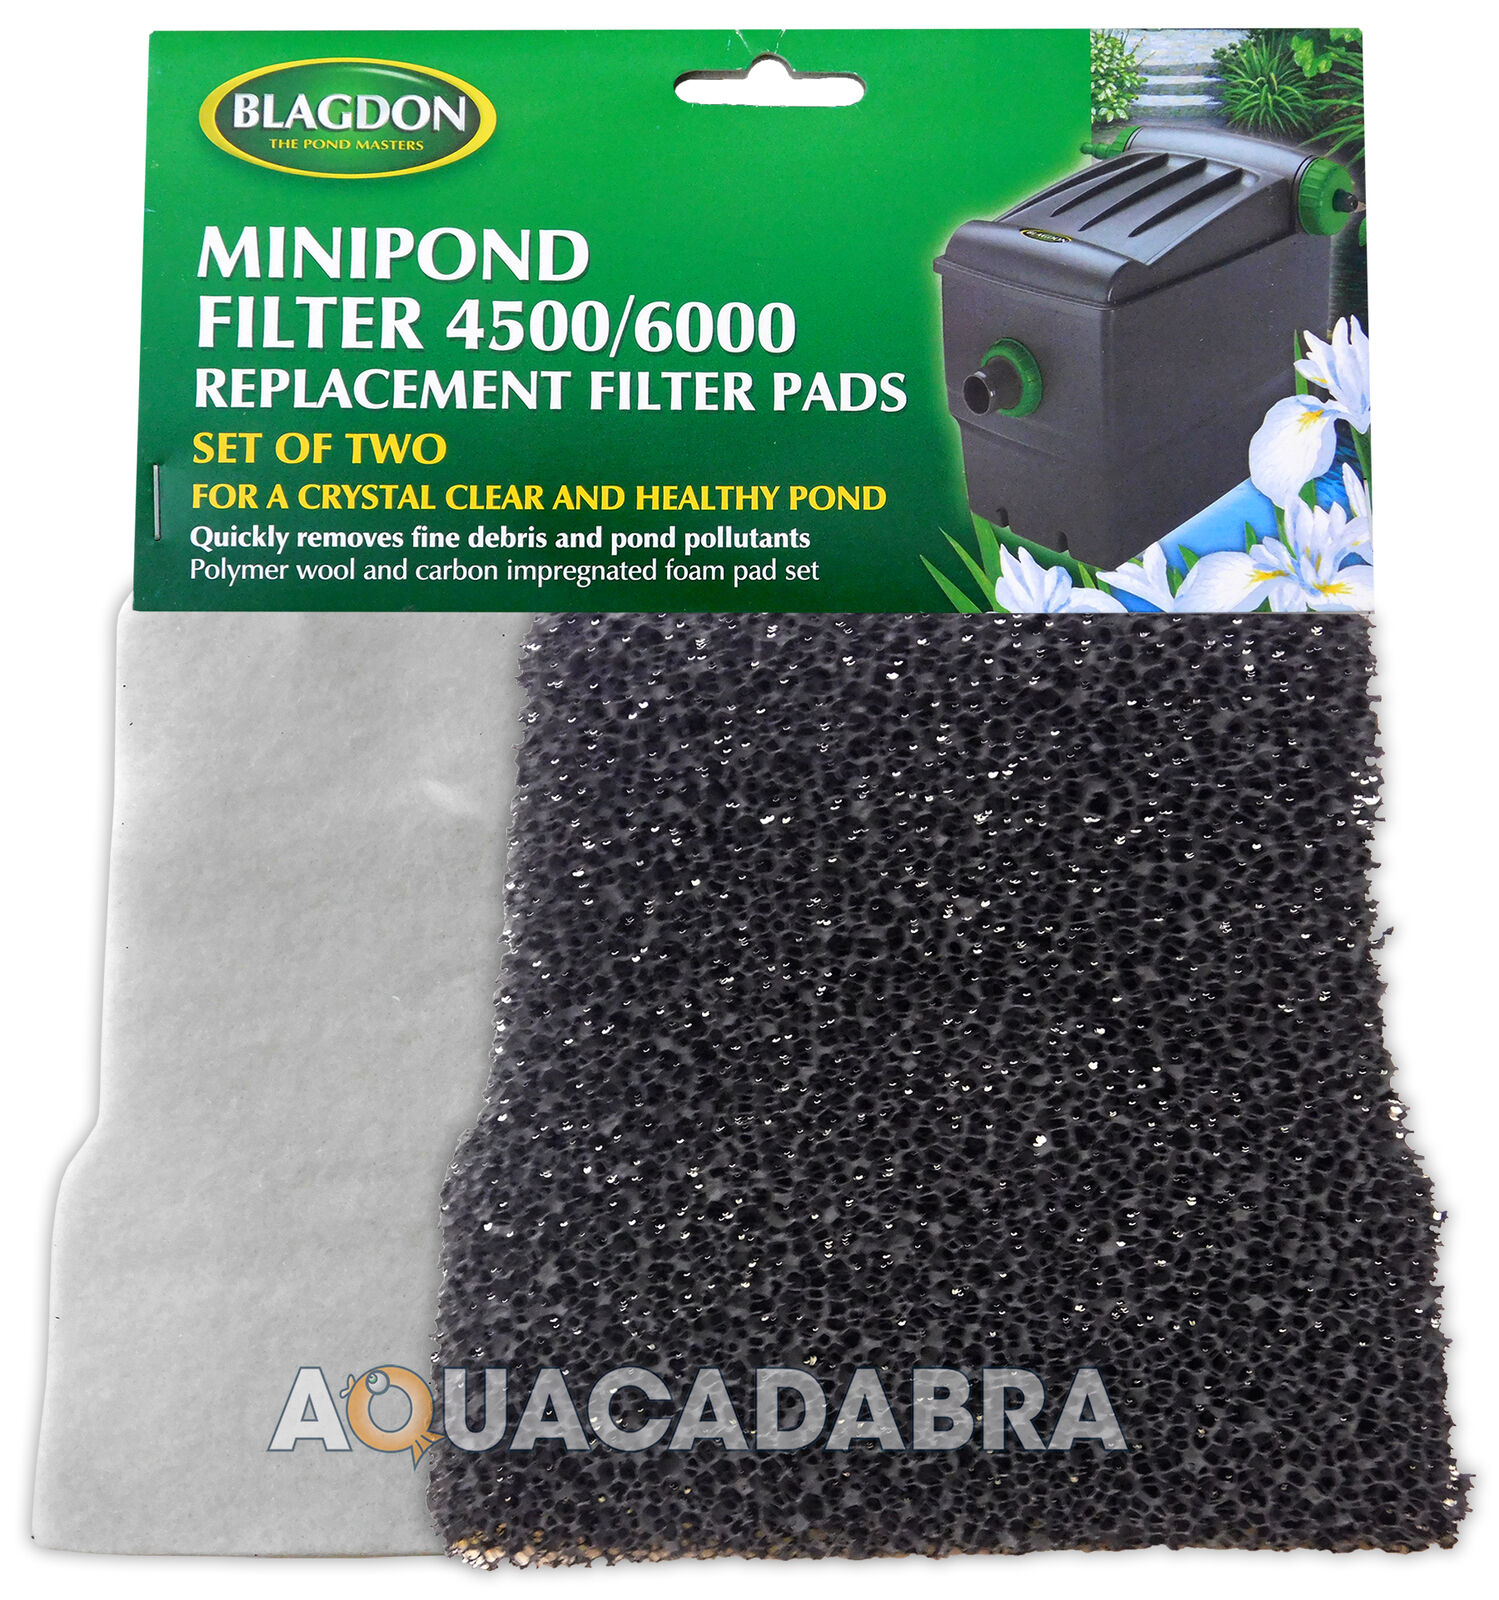 BLAGDON MINI POND FILTER 4500/6000 REPLACEMENT FILTER PADS 2 PACK POLYMER/CARBON